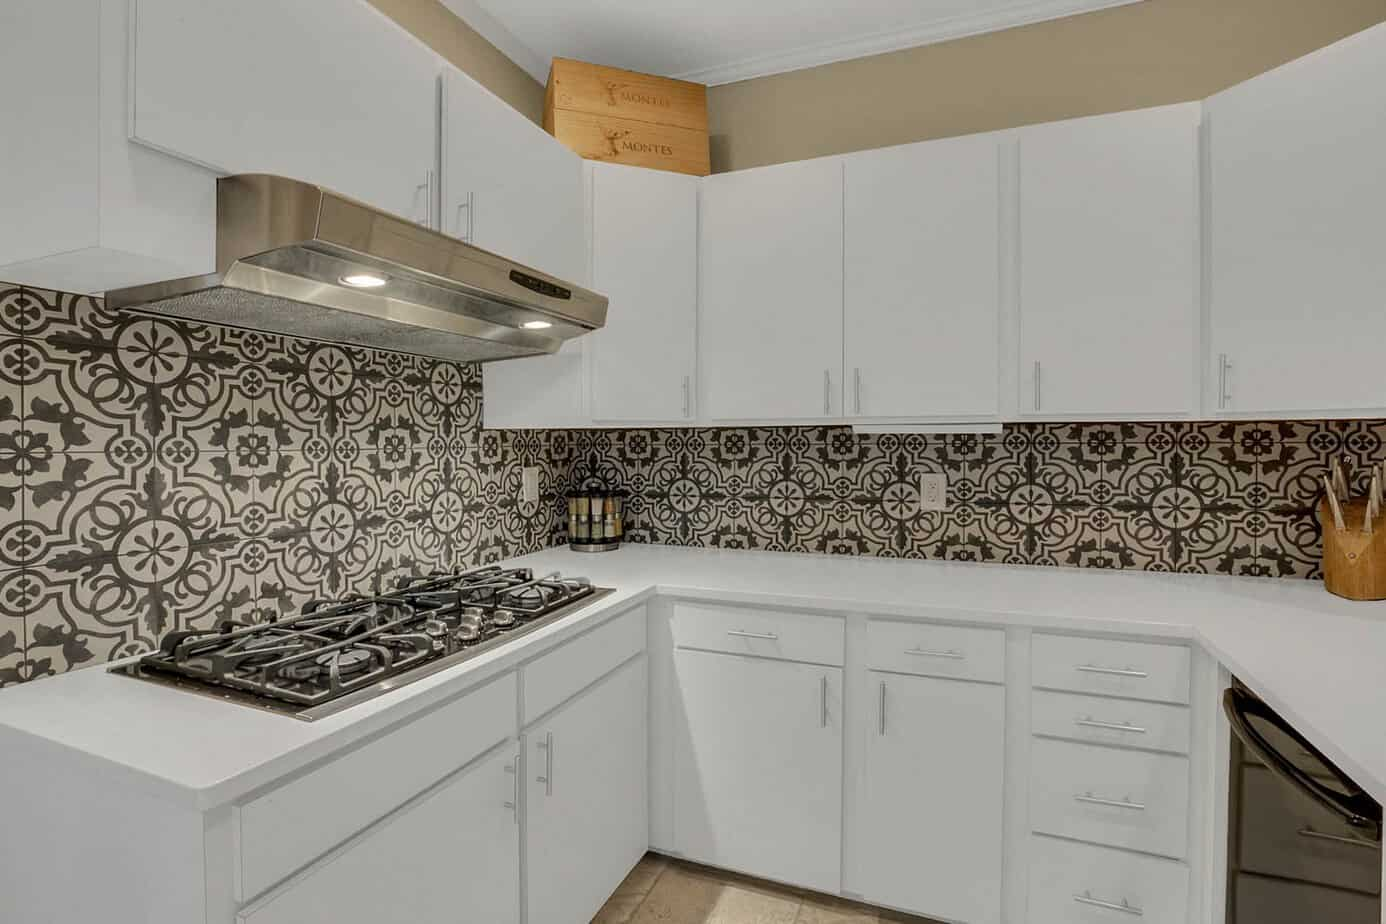 Kitchen with stone counterops, blue mosaic backsplash, Stainless Steel range hood, gas cooktop,, white cabinets and tile floor for the home for sale at 4024 W Bay to Bay Tampa FL 33629